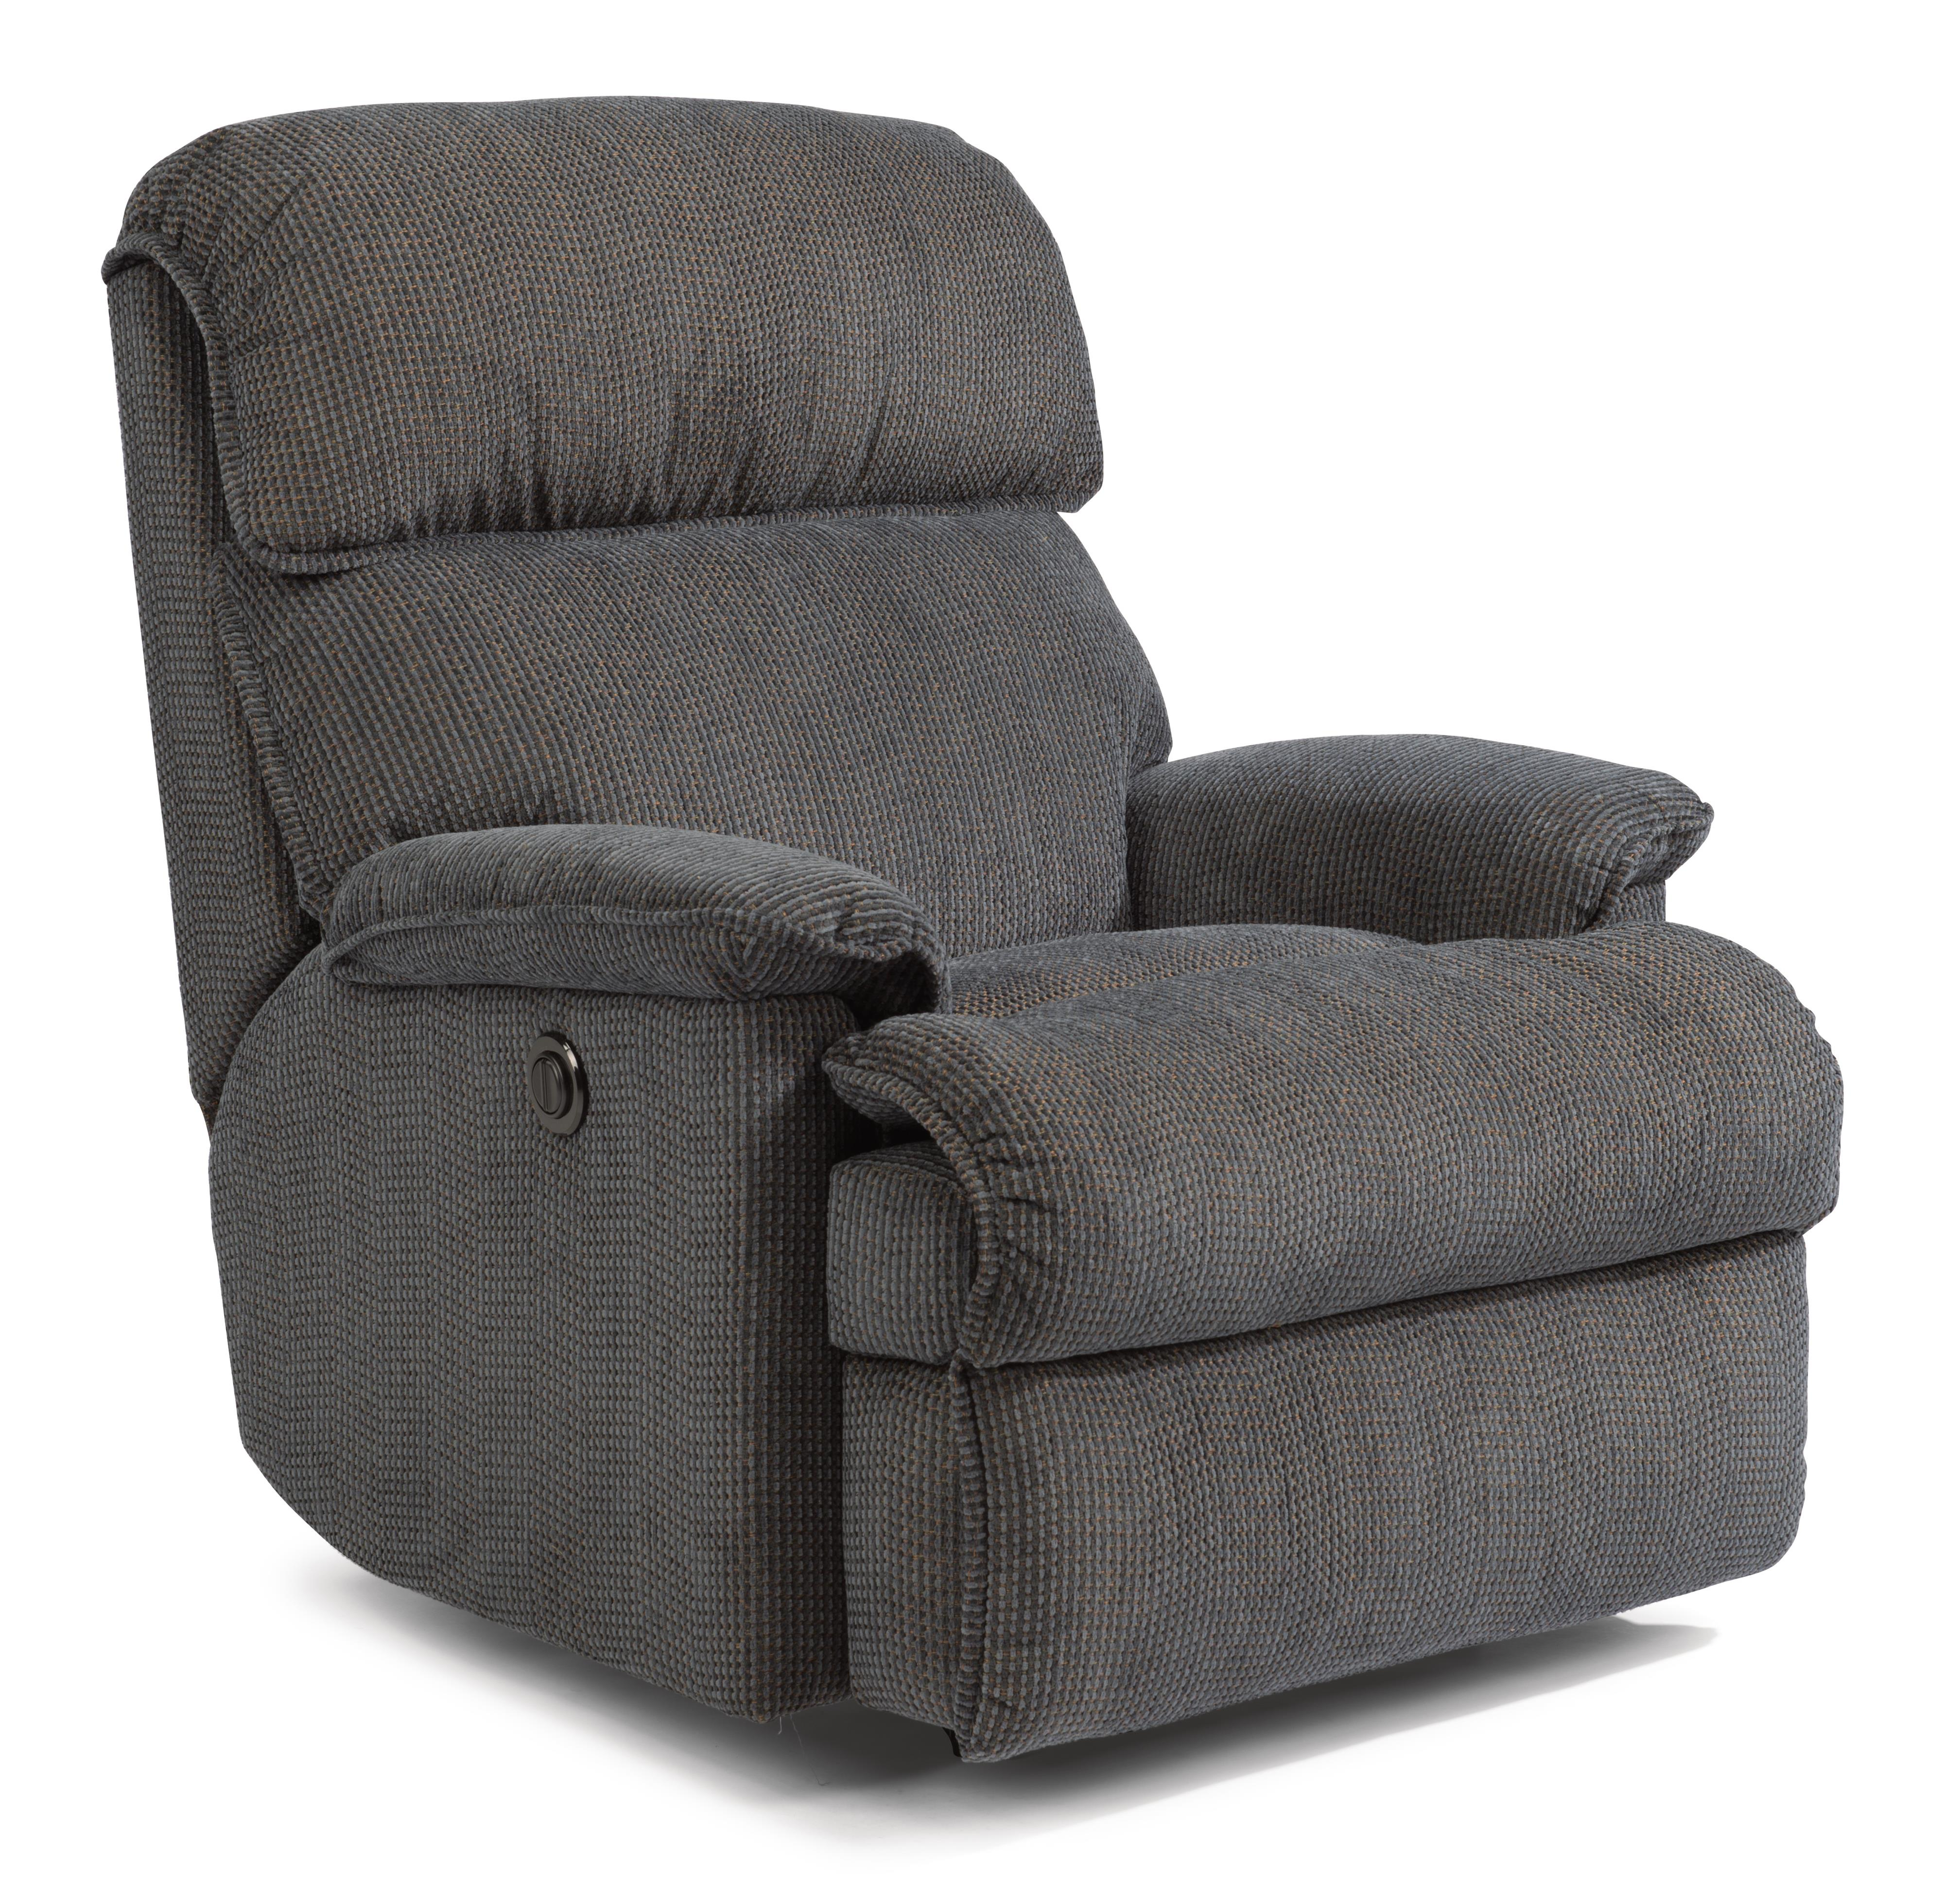 Accents Geneva Power Wall Recliner by Flexsteel at Suburban Furniture